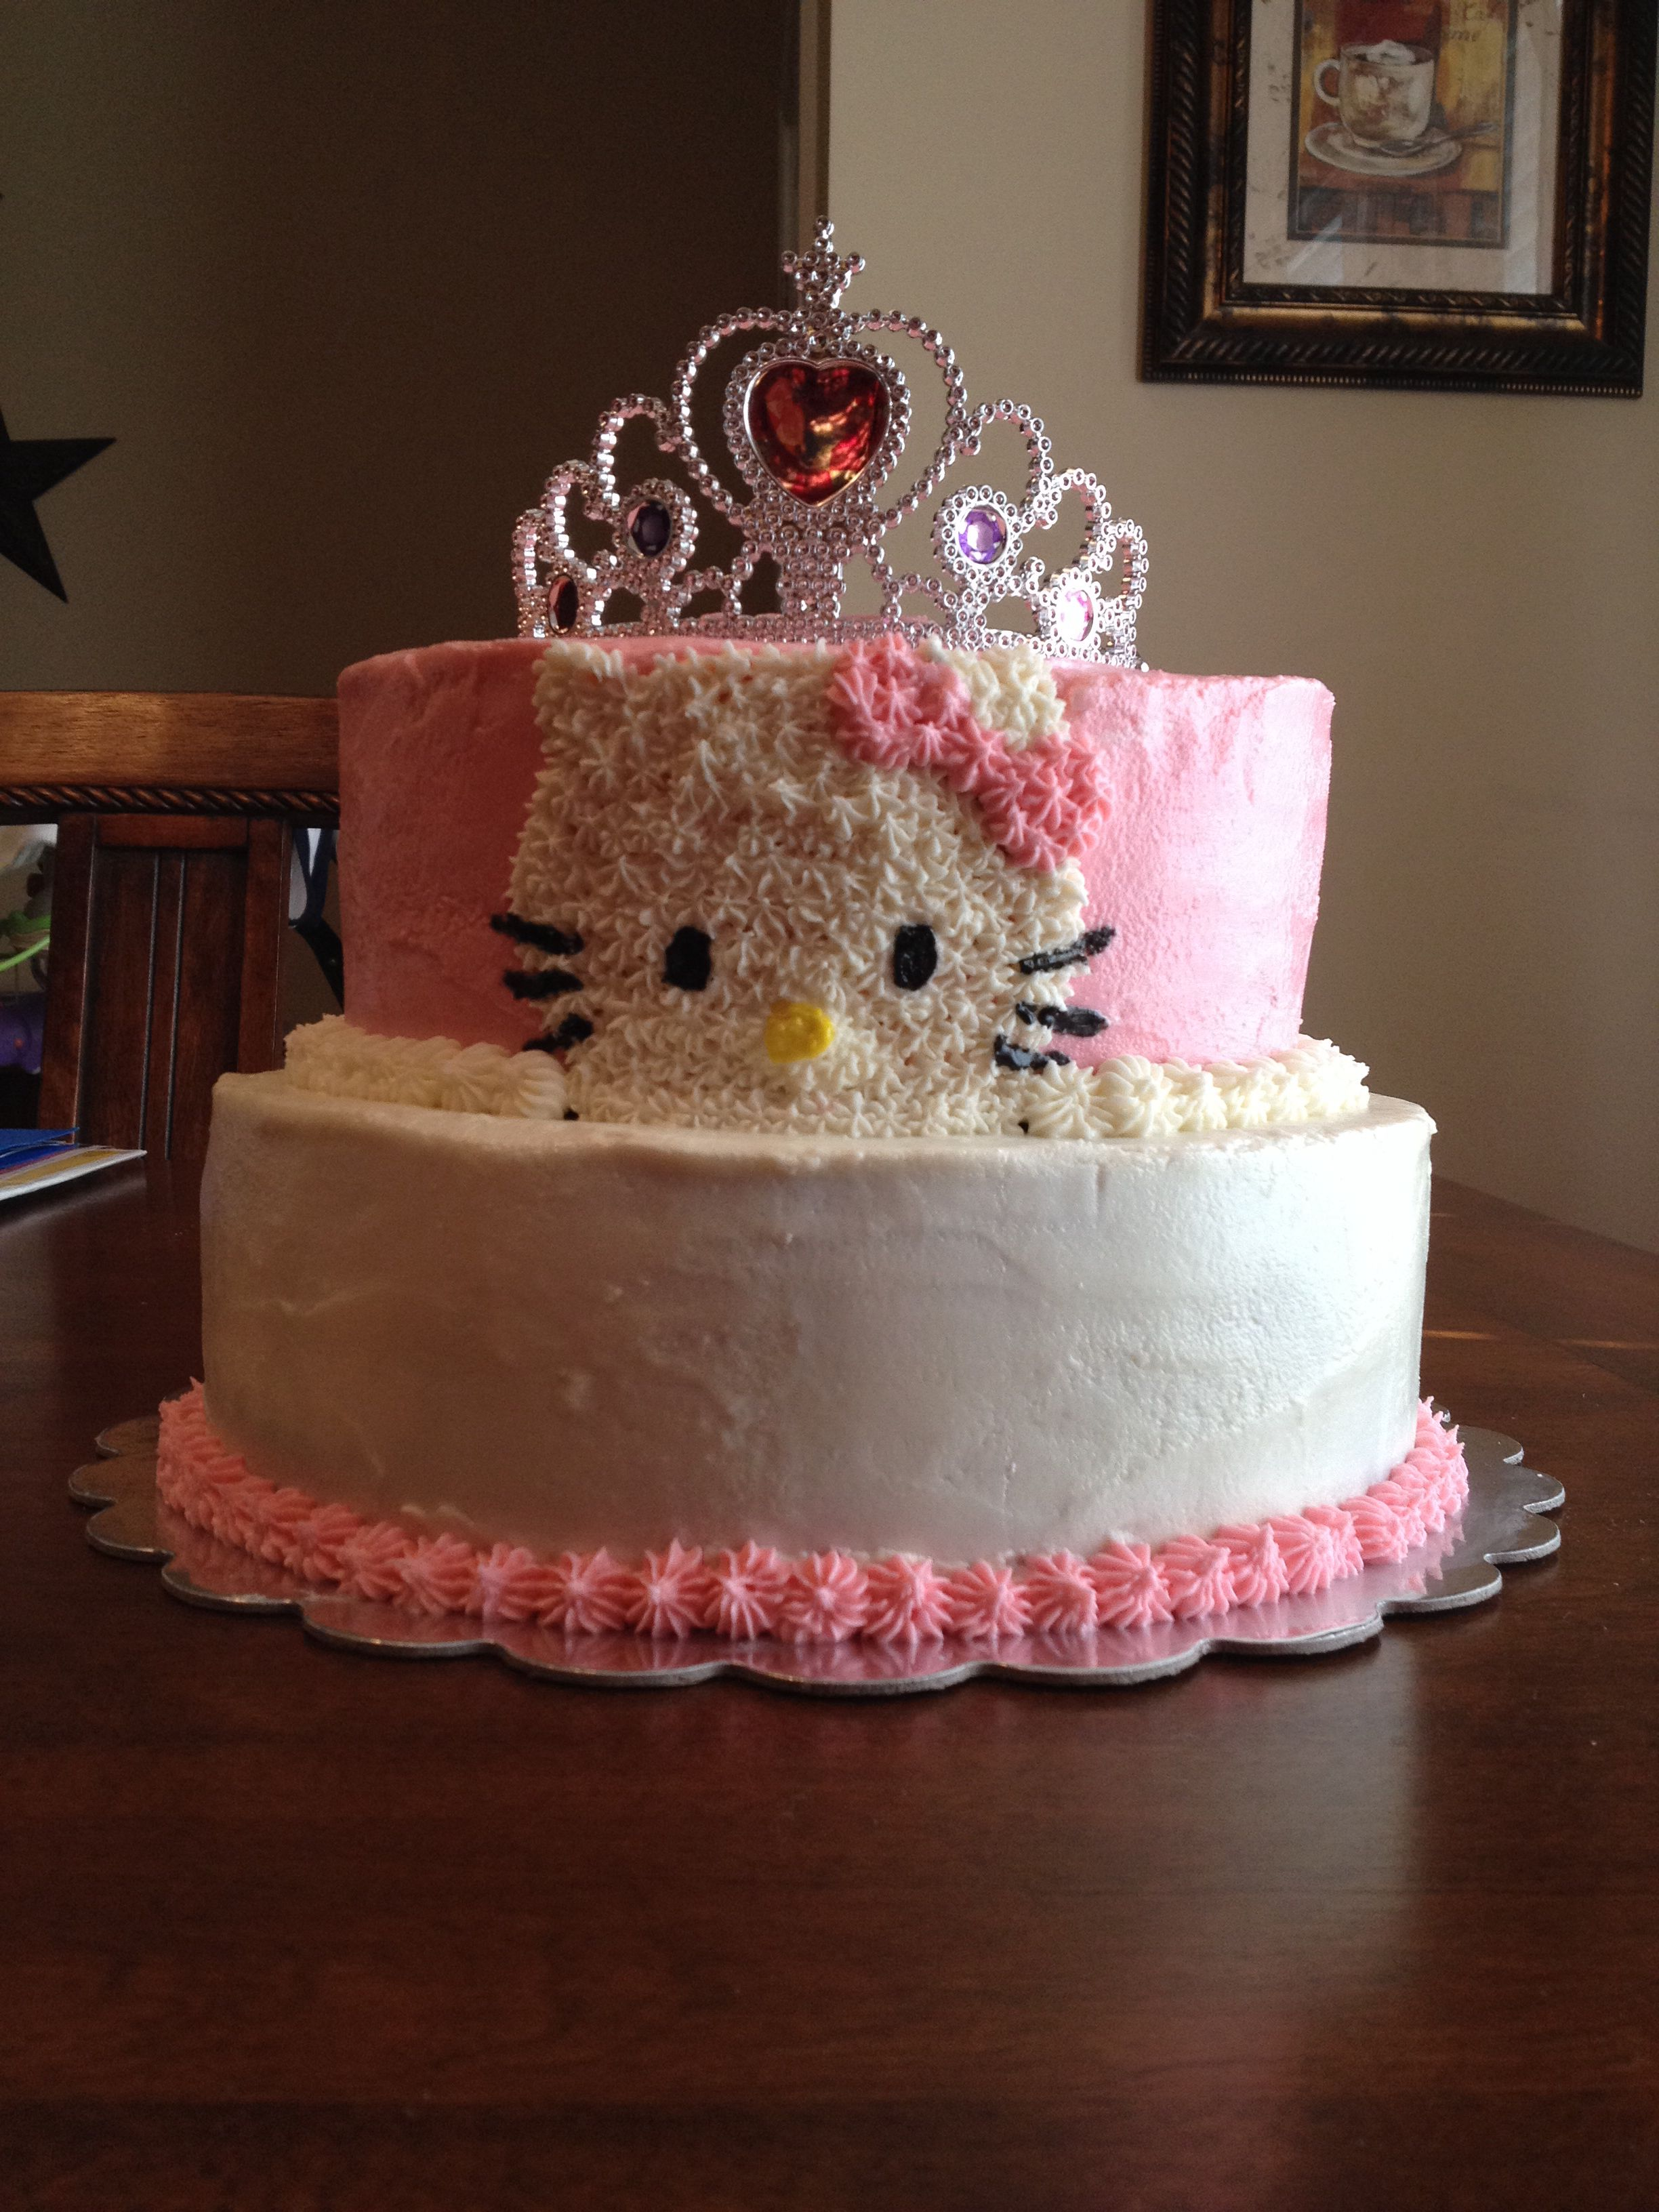 Pin by Matthew McCluggage on My Cakes | Hello kitty cake ...